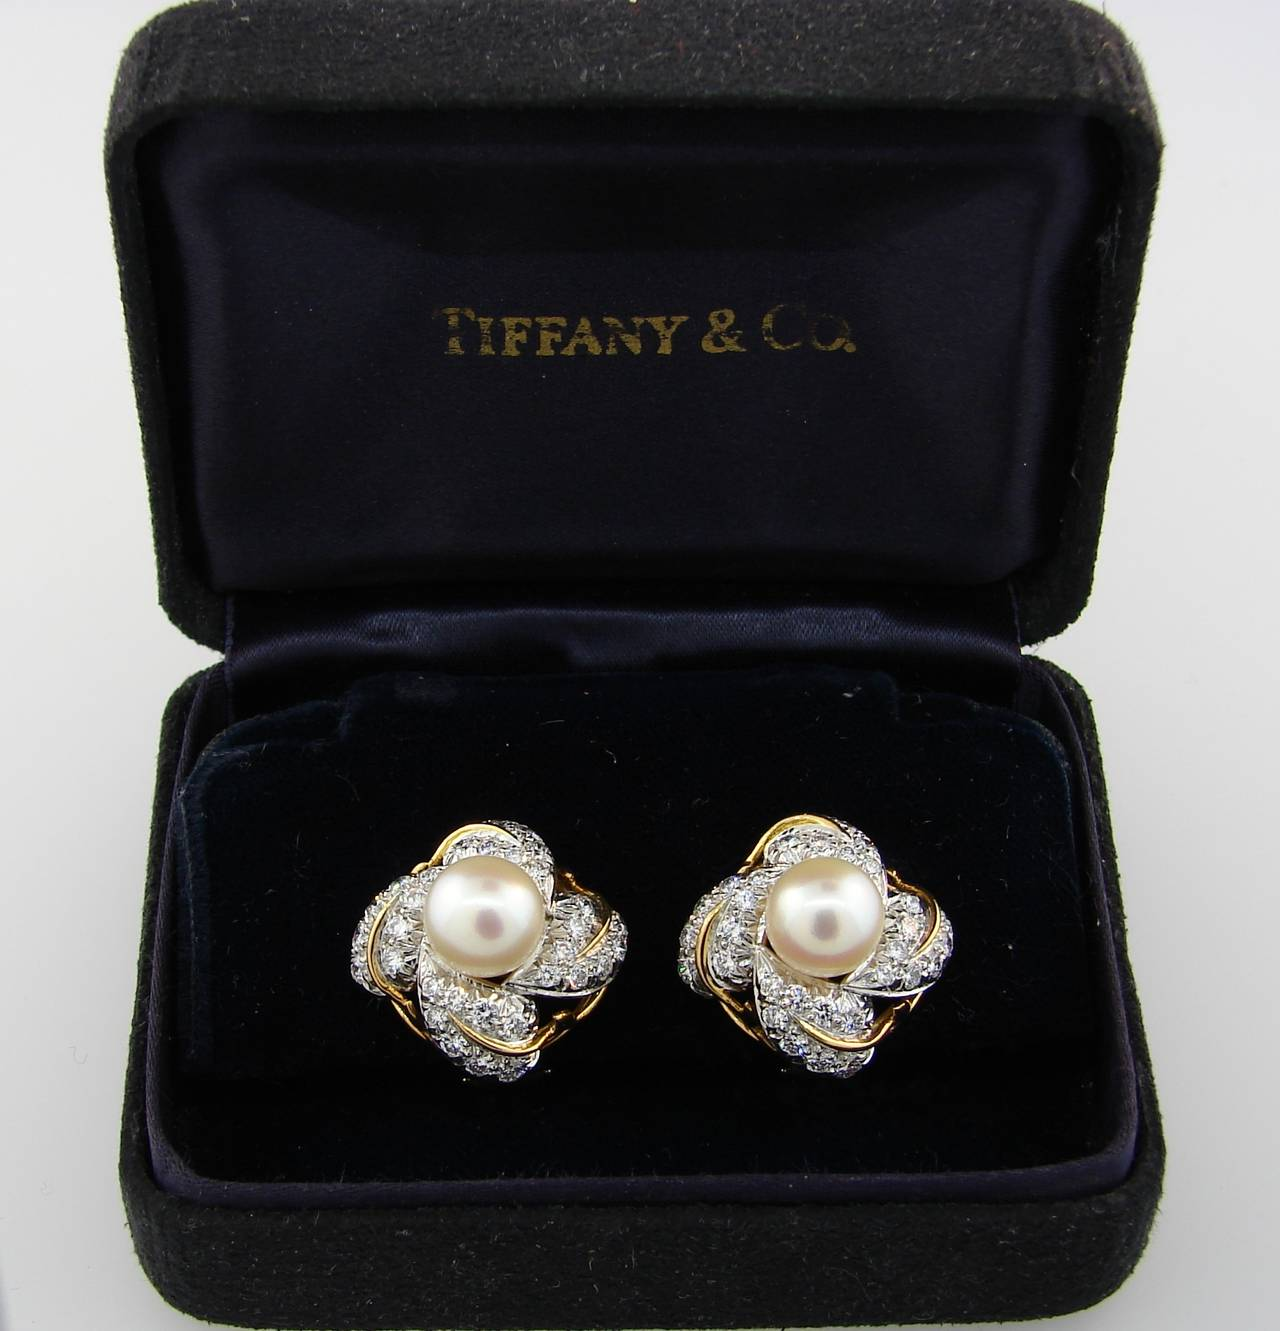 1970s Tiffany & Co. Schlumberger Pearl Diamond Gold Earrings For Sale 1